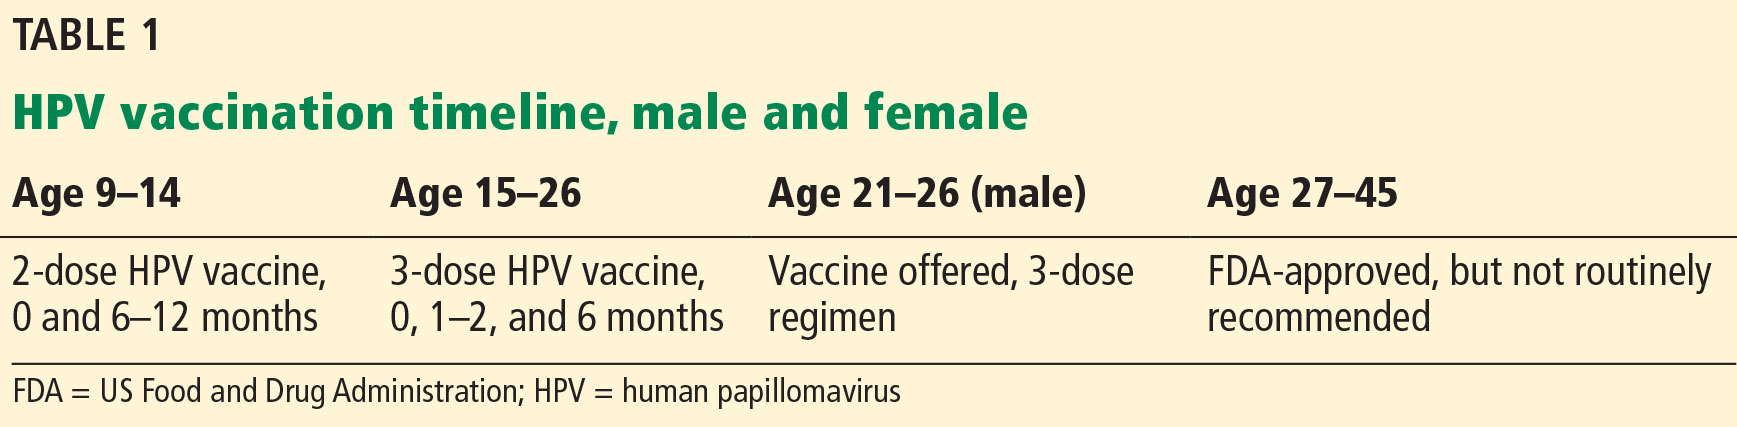 human papillomavirus vaccine for older adults)